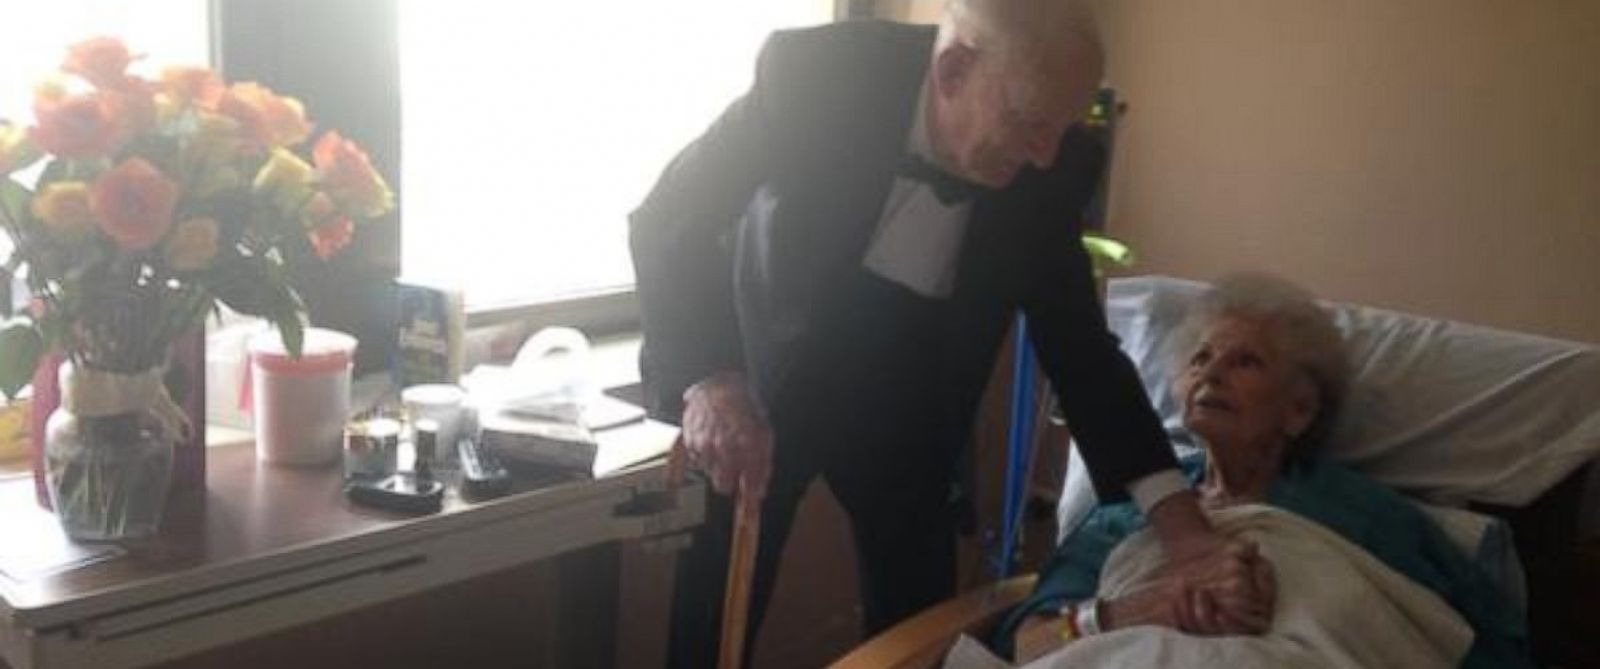 "PHOTO: On their 57th anniversary, James ""Jim"" Russell showed up to his wife Elinors hospital room wearing a tuxedo and carrying flowers and chocolate."